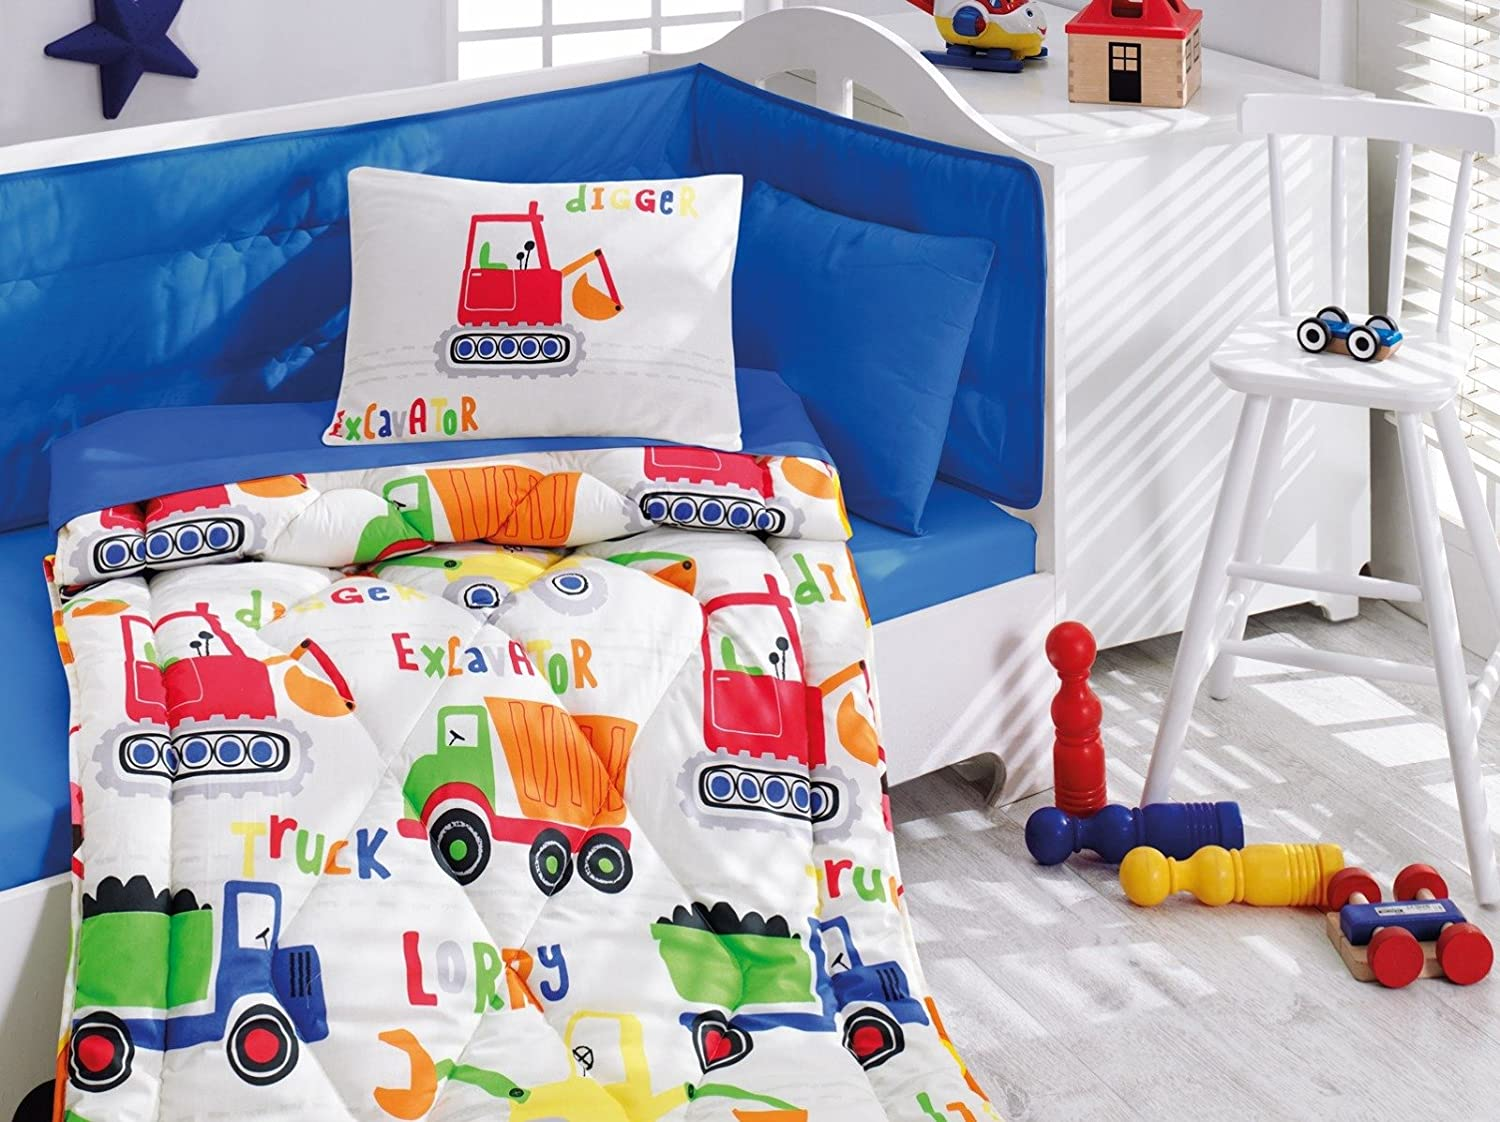 DecoMood Construction Vehicles - 100% Cotton Nursery Crib Set for Boys, 6 Pieces Baby Comforter/Quilt Set with Crib Bumper, Comforter, Crib Sheet, Pillowcases